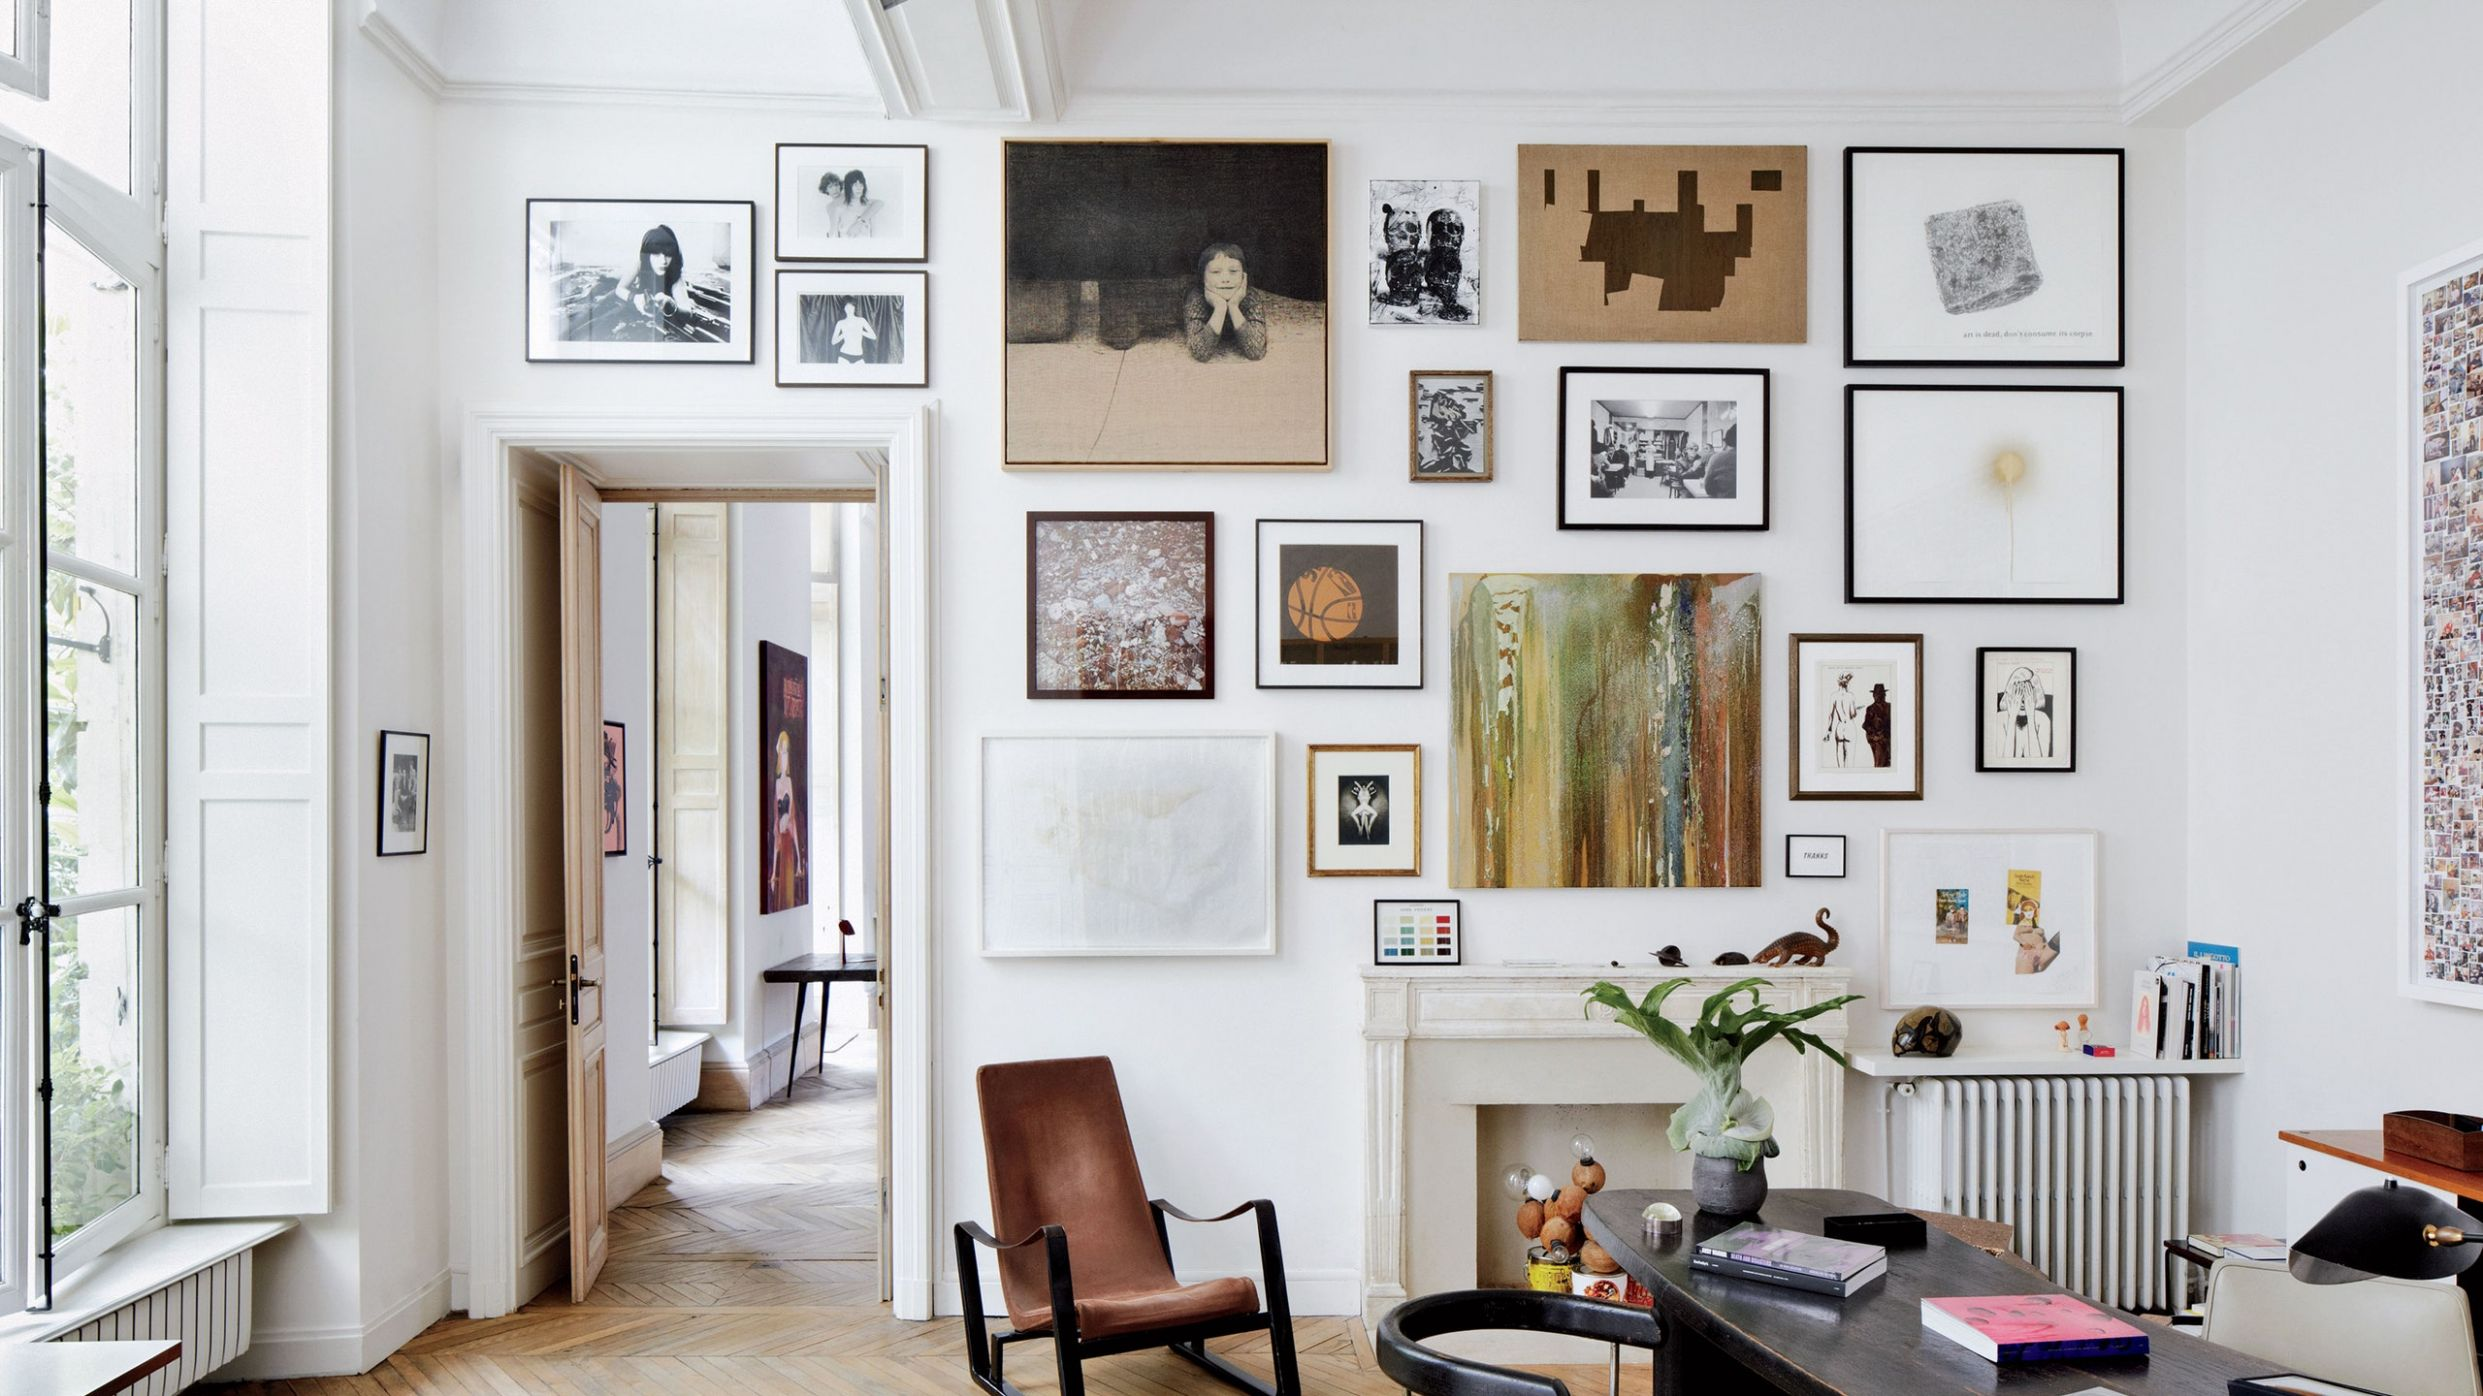 11 Wall Decor Ideas to Refresh Your Space | Architectural Digest - wall decor ideas for family room